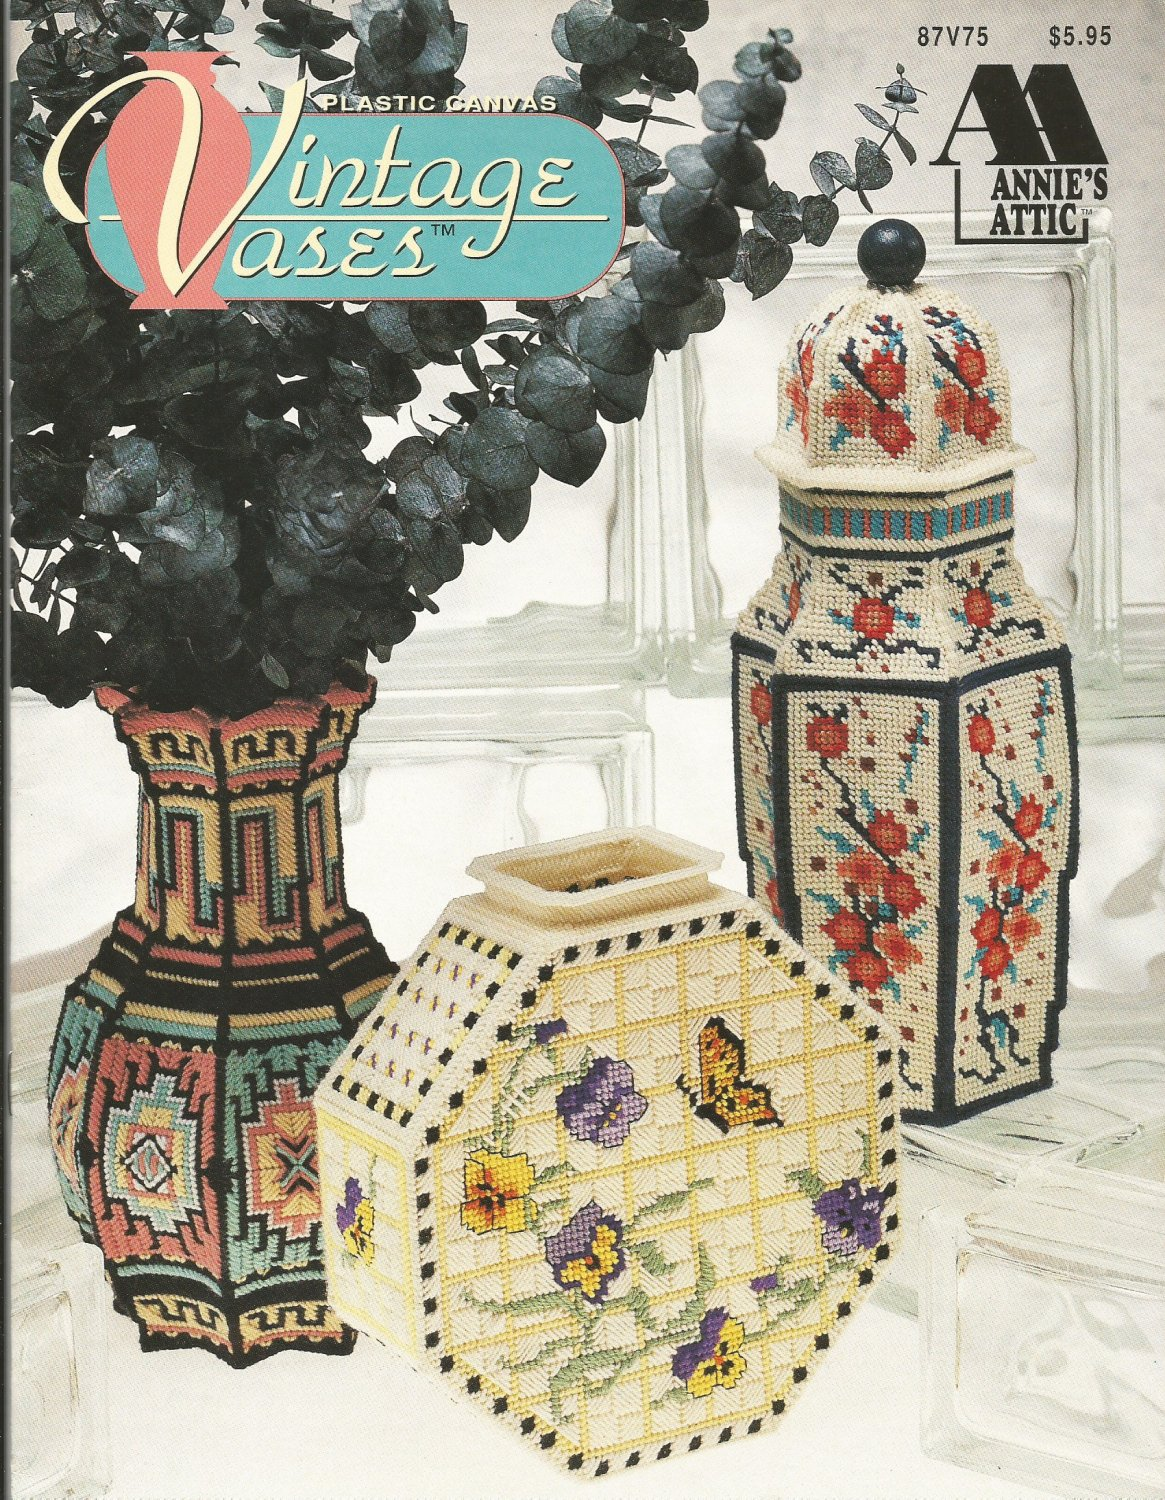 vintage vases in plastic canvas pattern by annie s attic